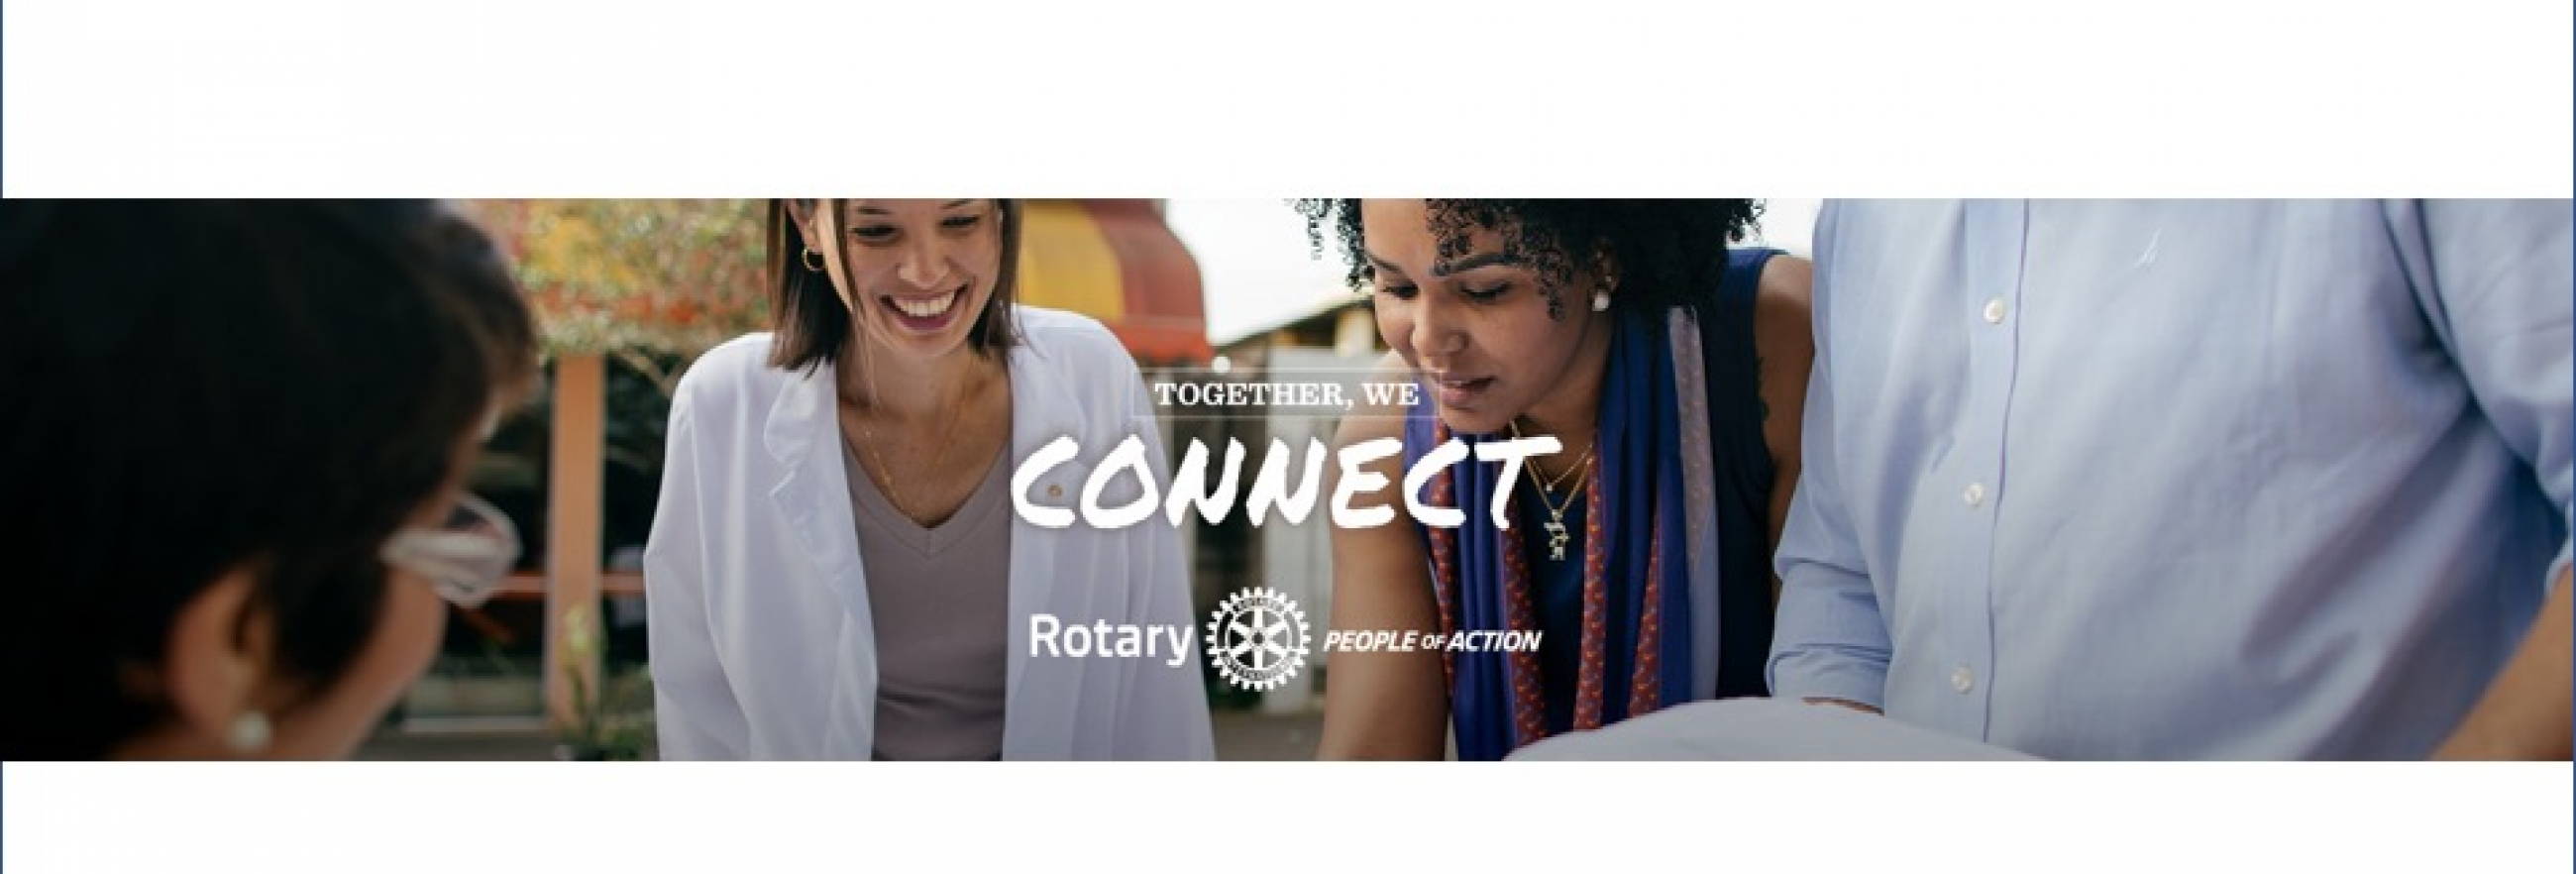 together_we_connect_banner